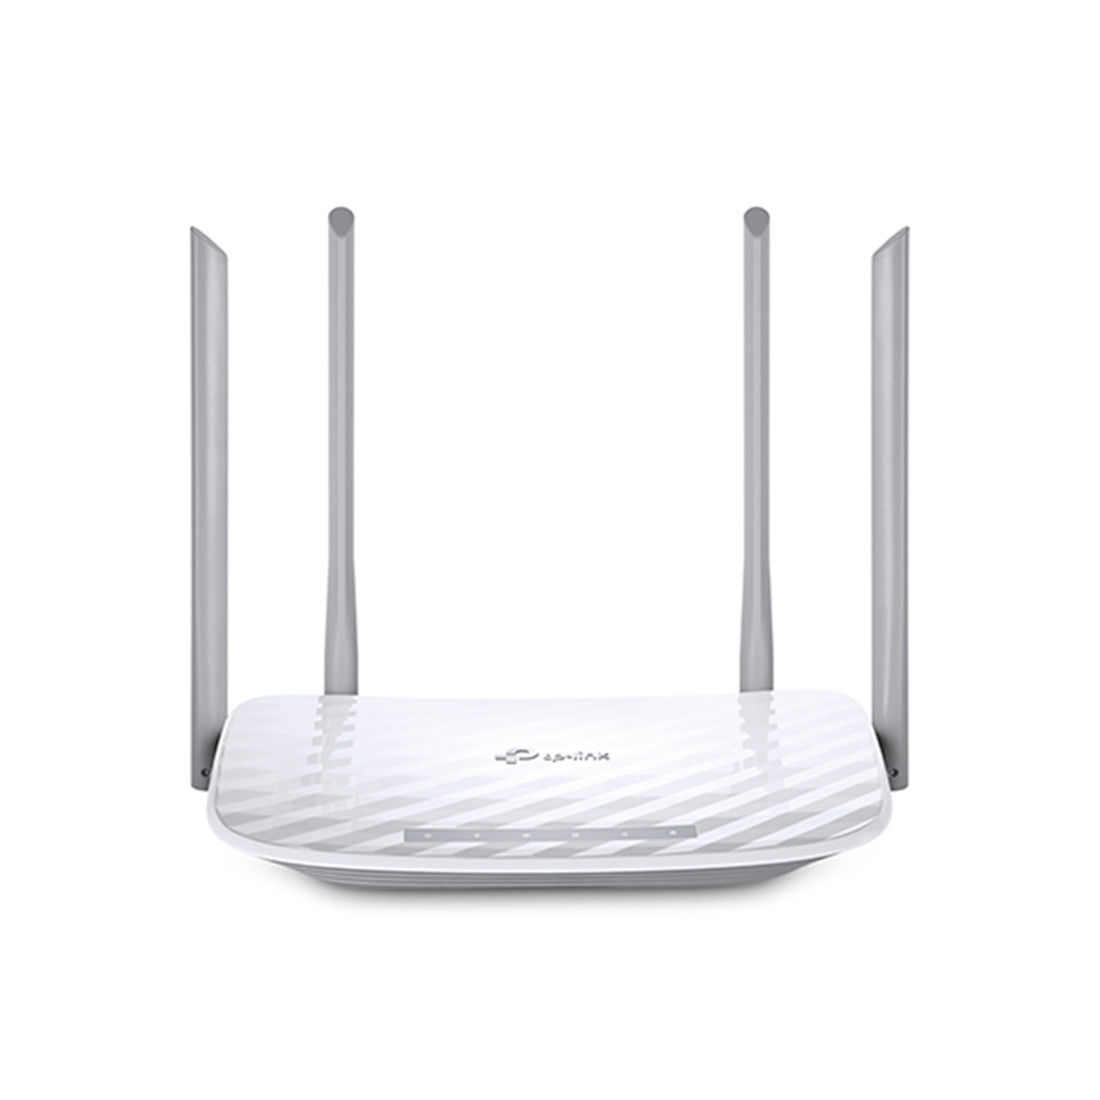 Маршрутизатор TP-Link Archer C50(RU), 1200М